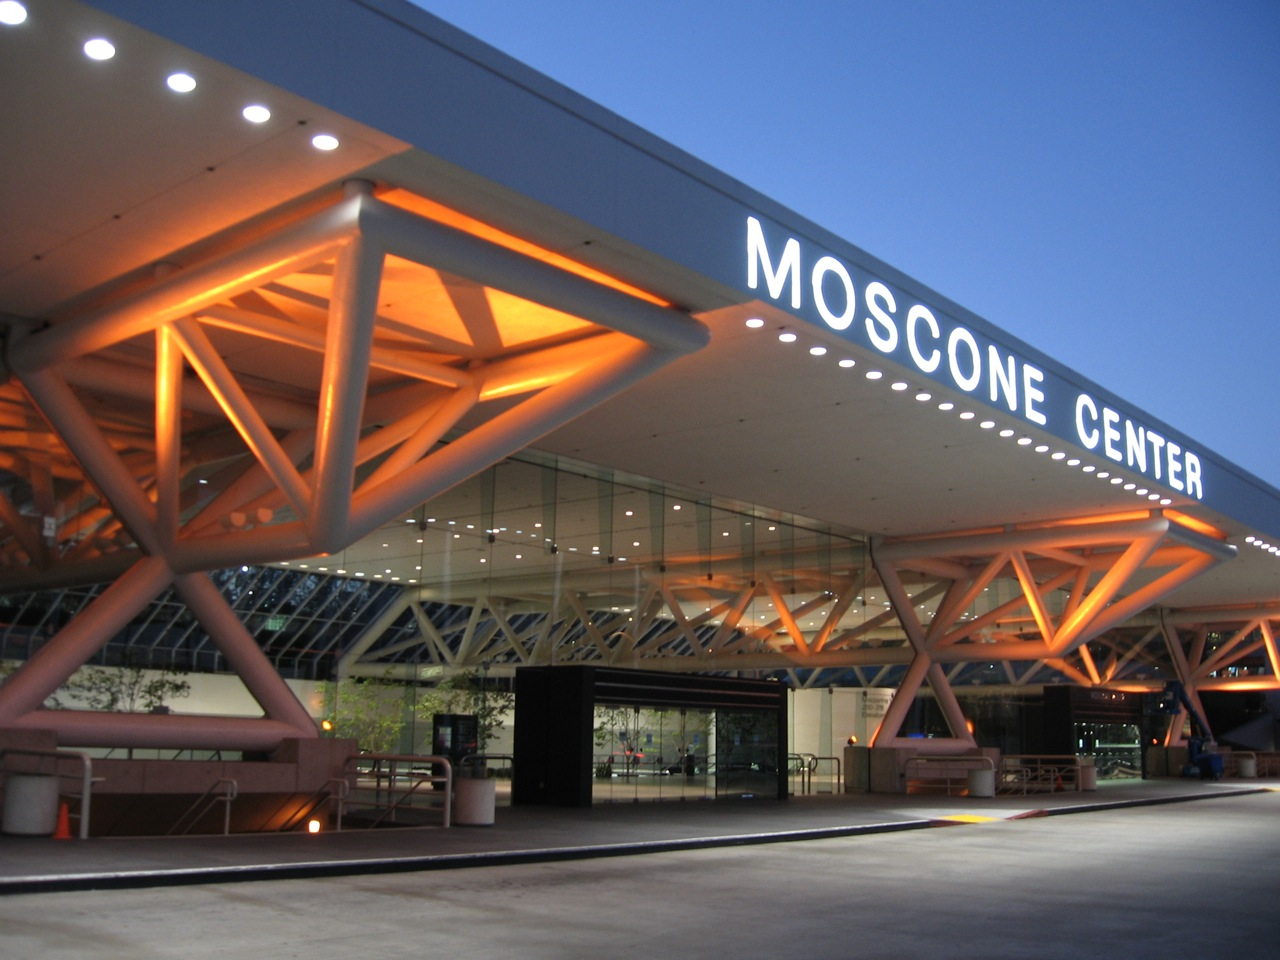 SPIE Photonics West will take place at the Moscone center, San Francisco. Image via Moscone center.